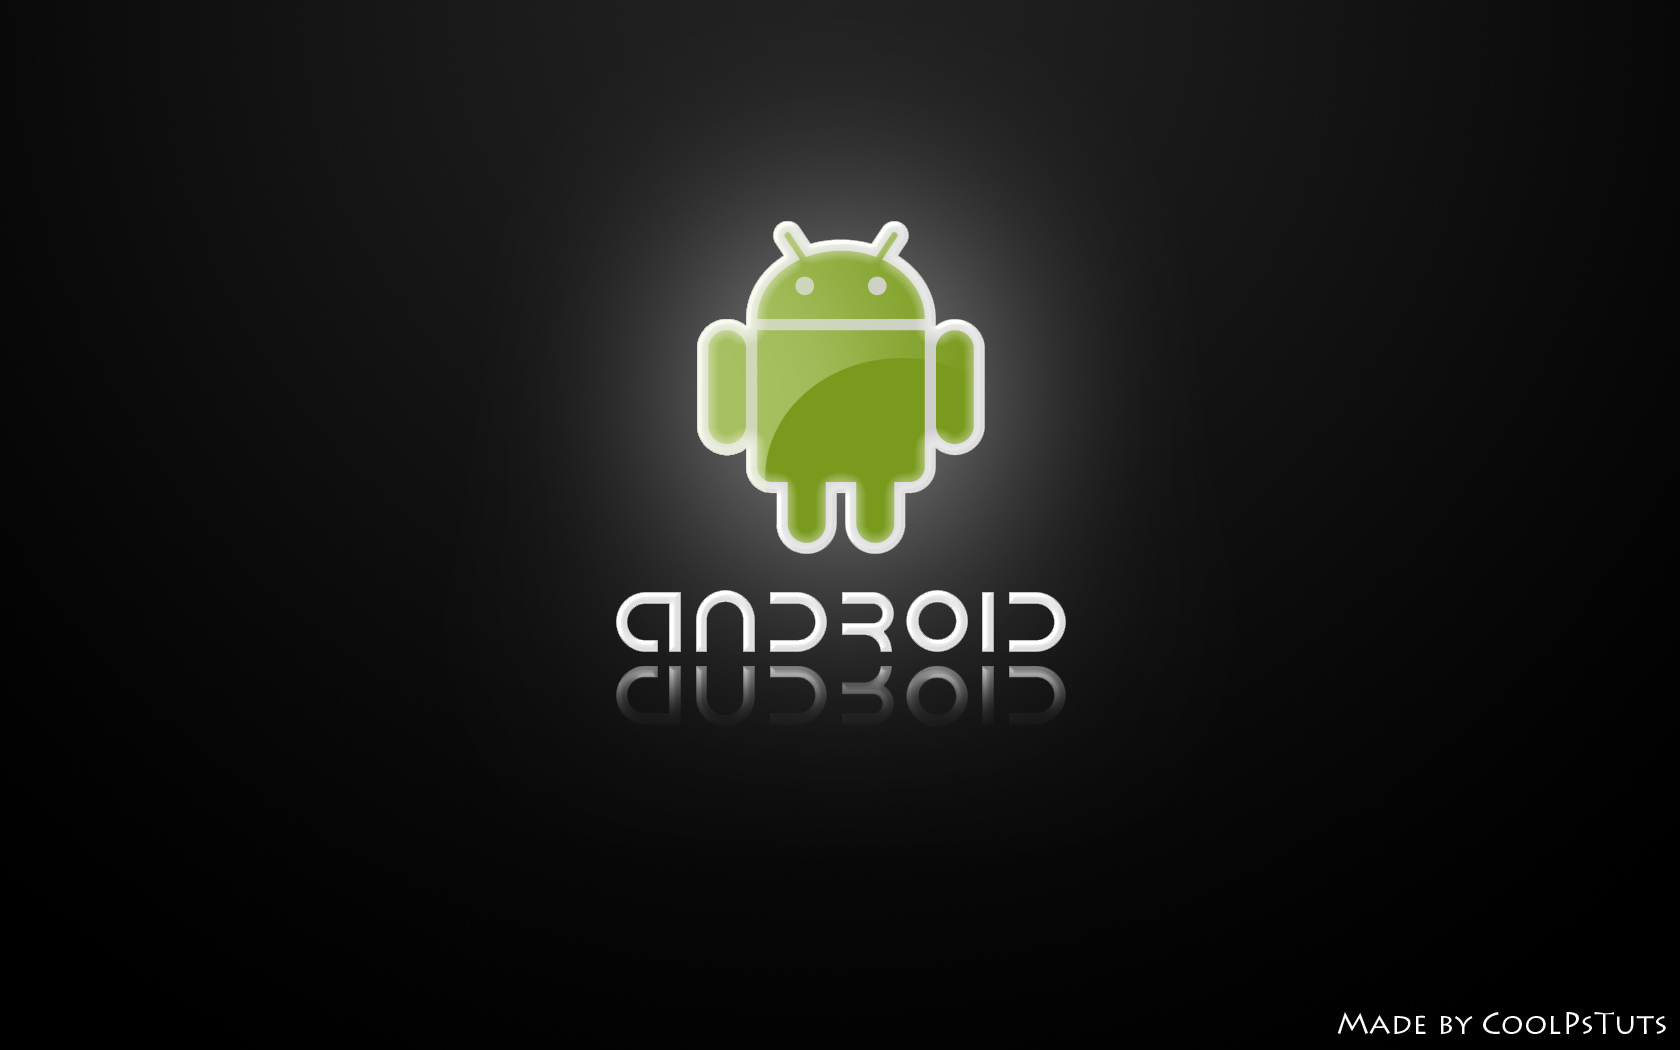 Google Android By Coolpstuts On Deviant ドロイドくん